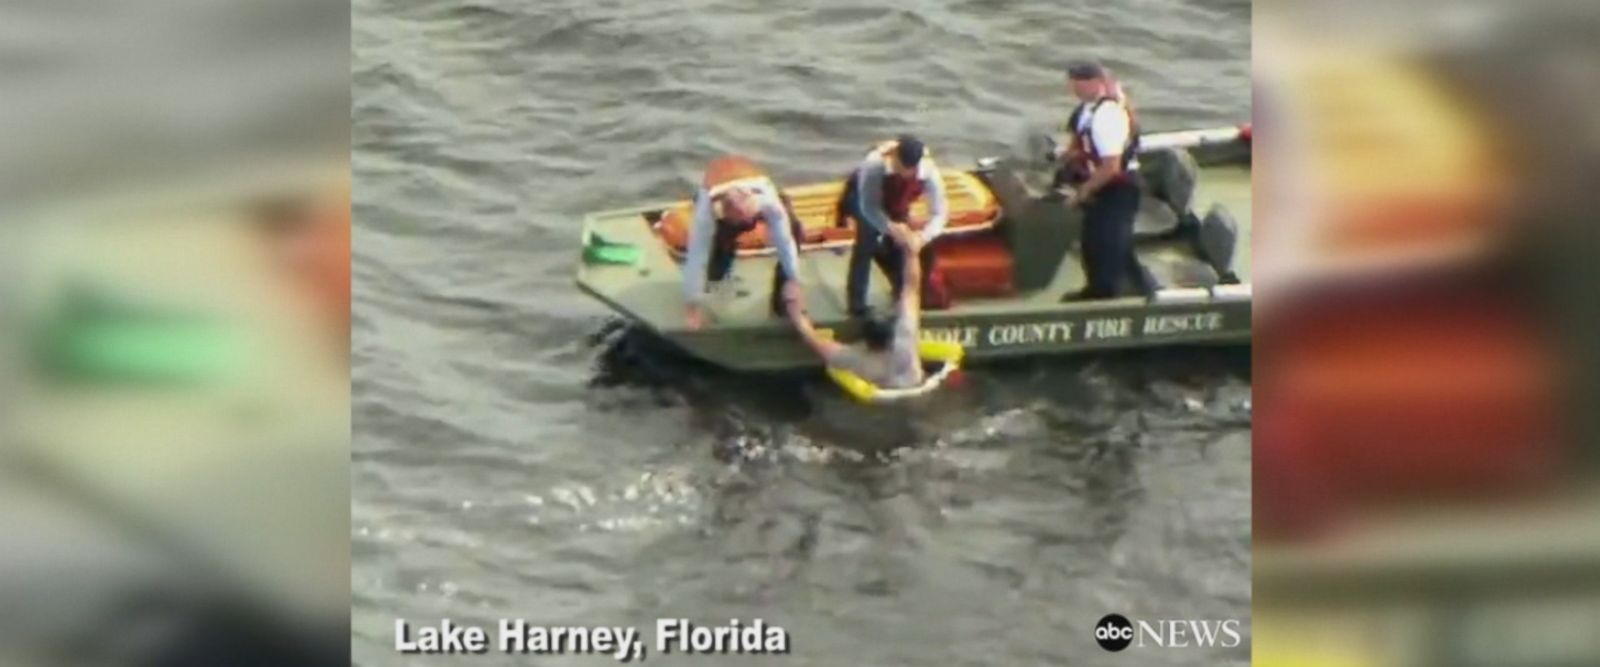 Dramatic rescue captured on video as deputies rescuing men from lake in Florida after their boat capsizes.